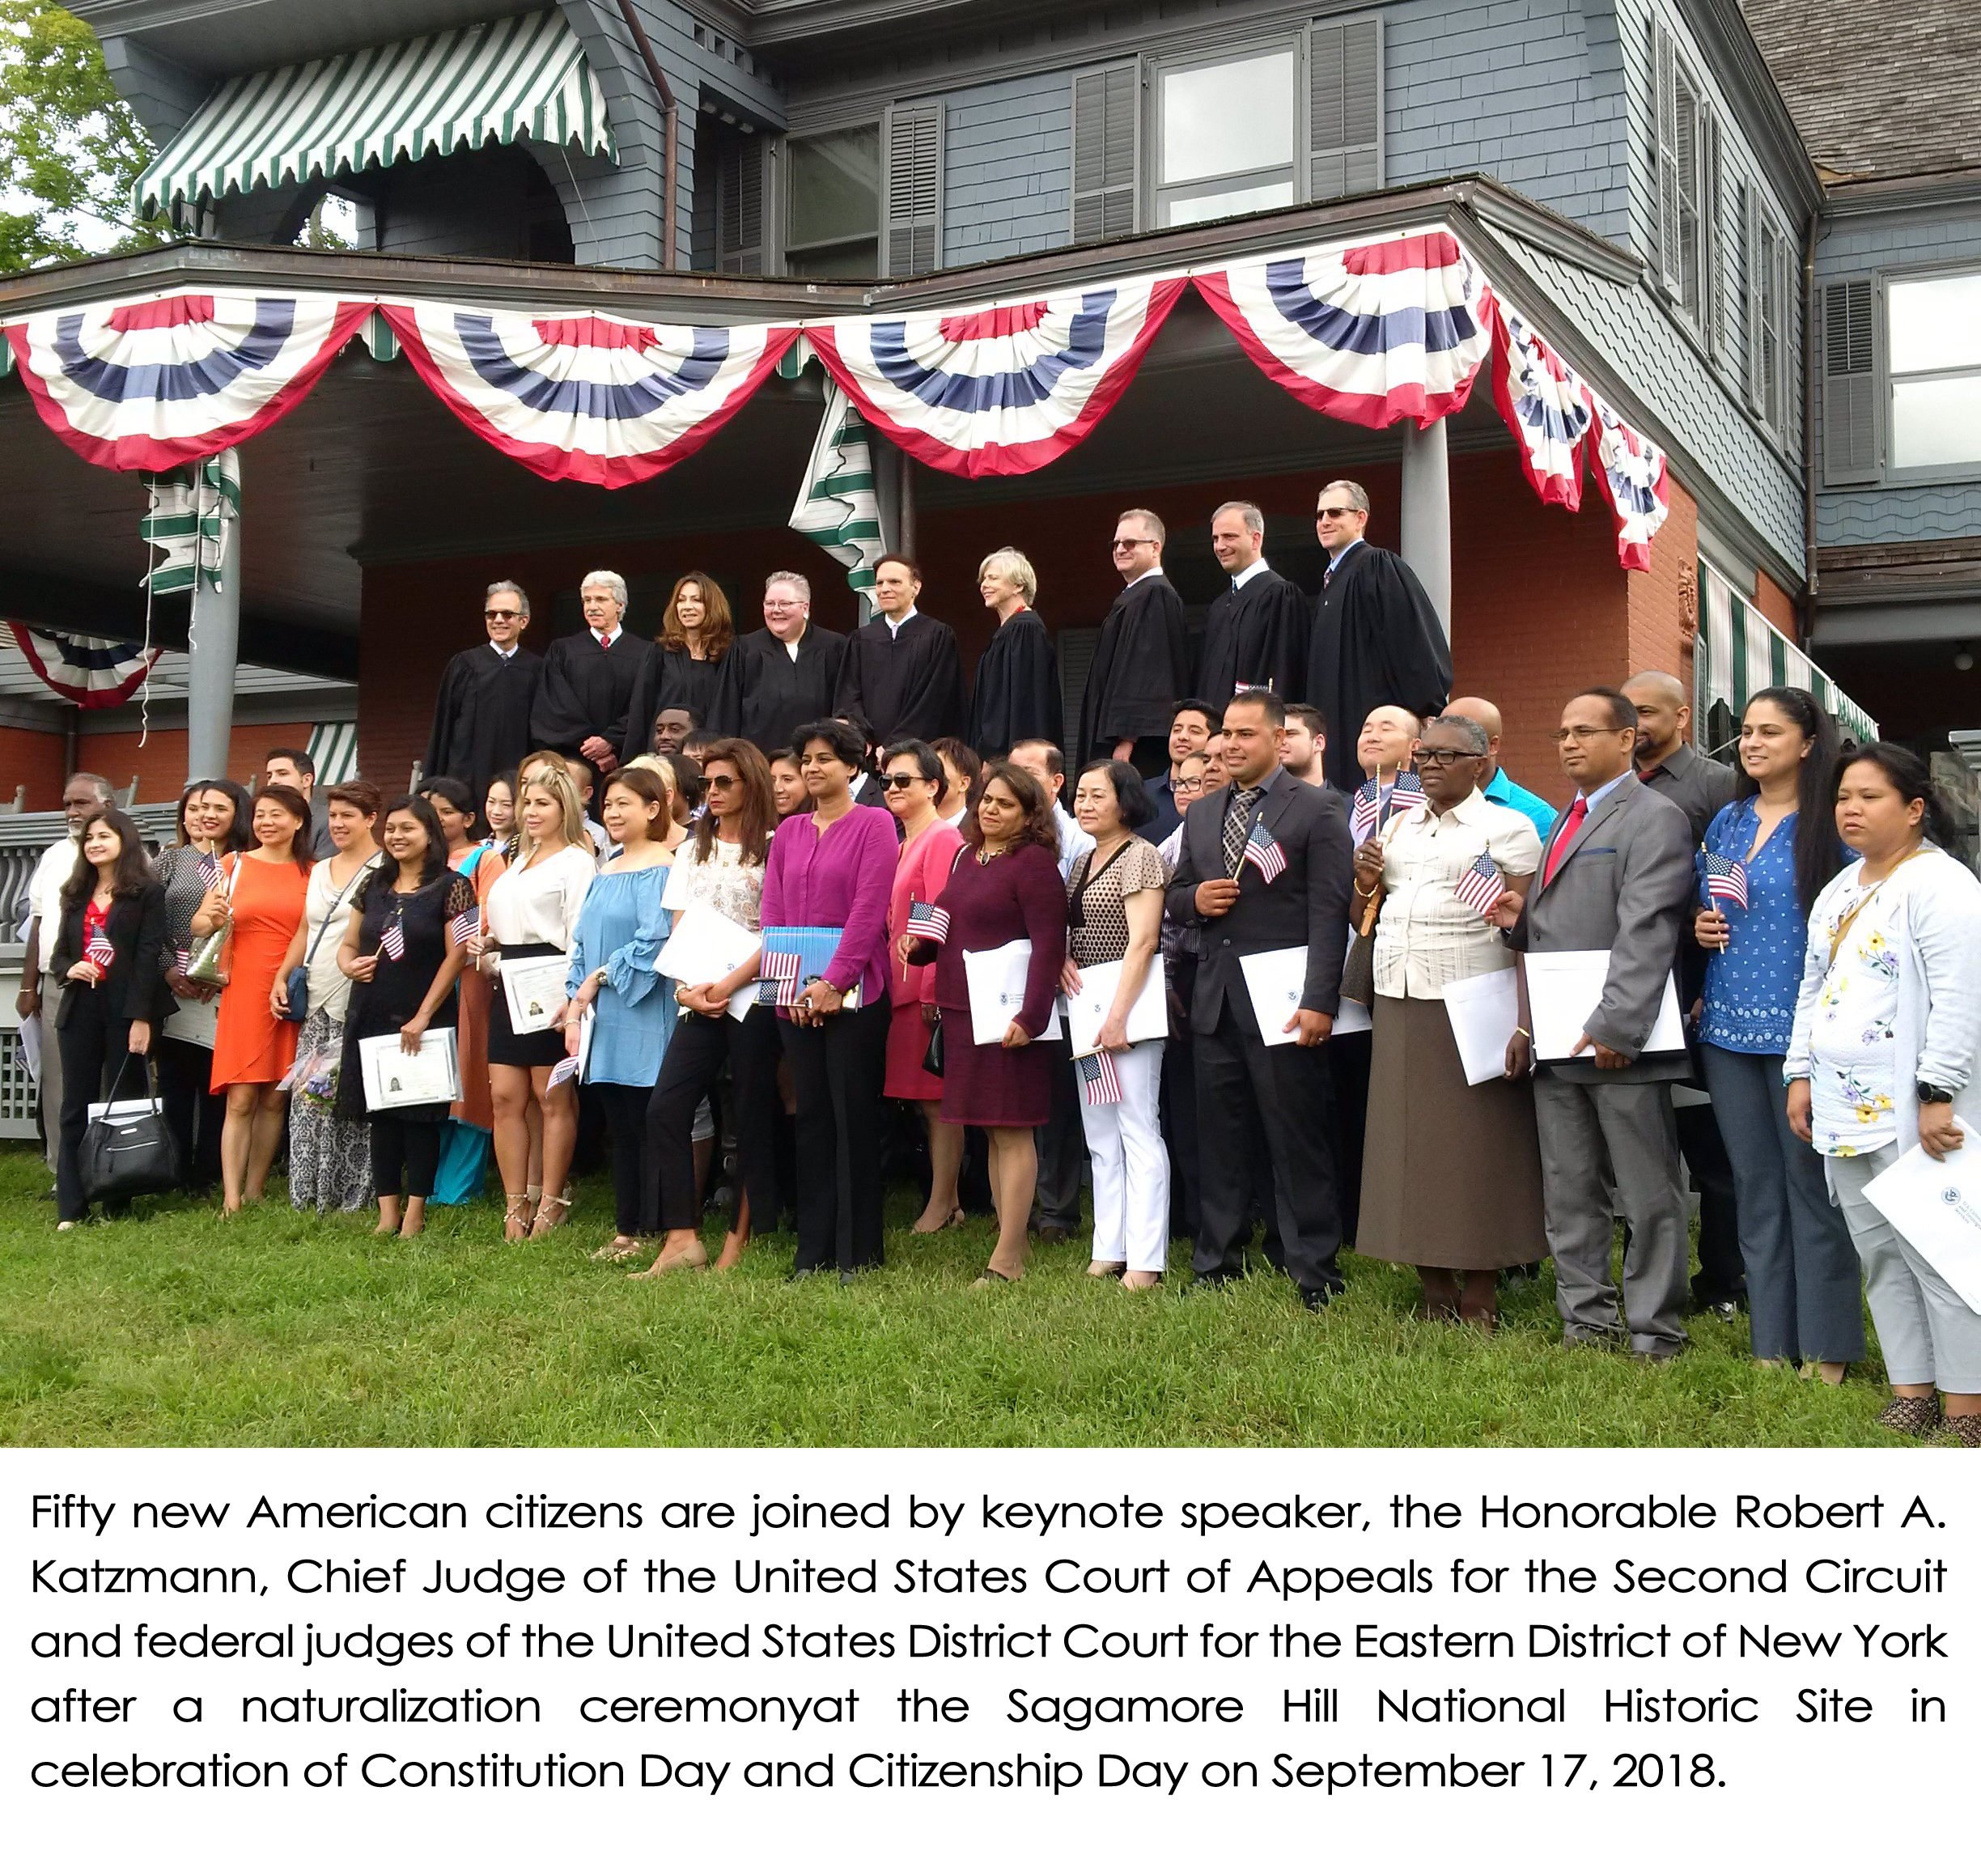 Justice For All Courts And The Community Civic Ceremonies 2nd Circuit Court Of Appeals Fifty New Citizens Took Oath Allegiance To United States At Third Annual Special Naturalization Ceremony Historic Sagamore Hill